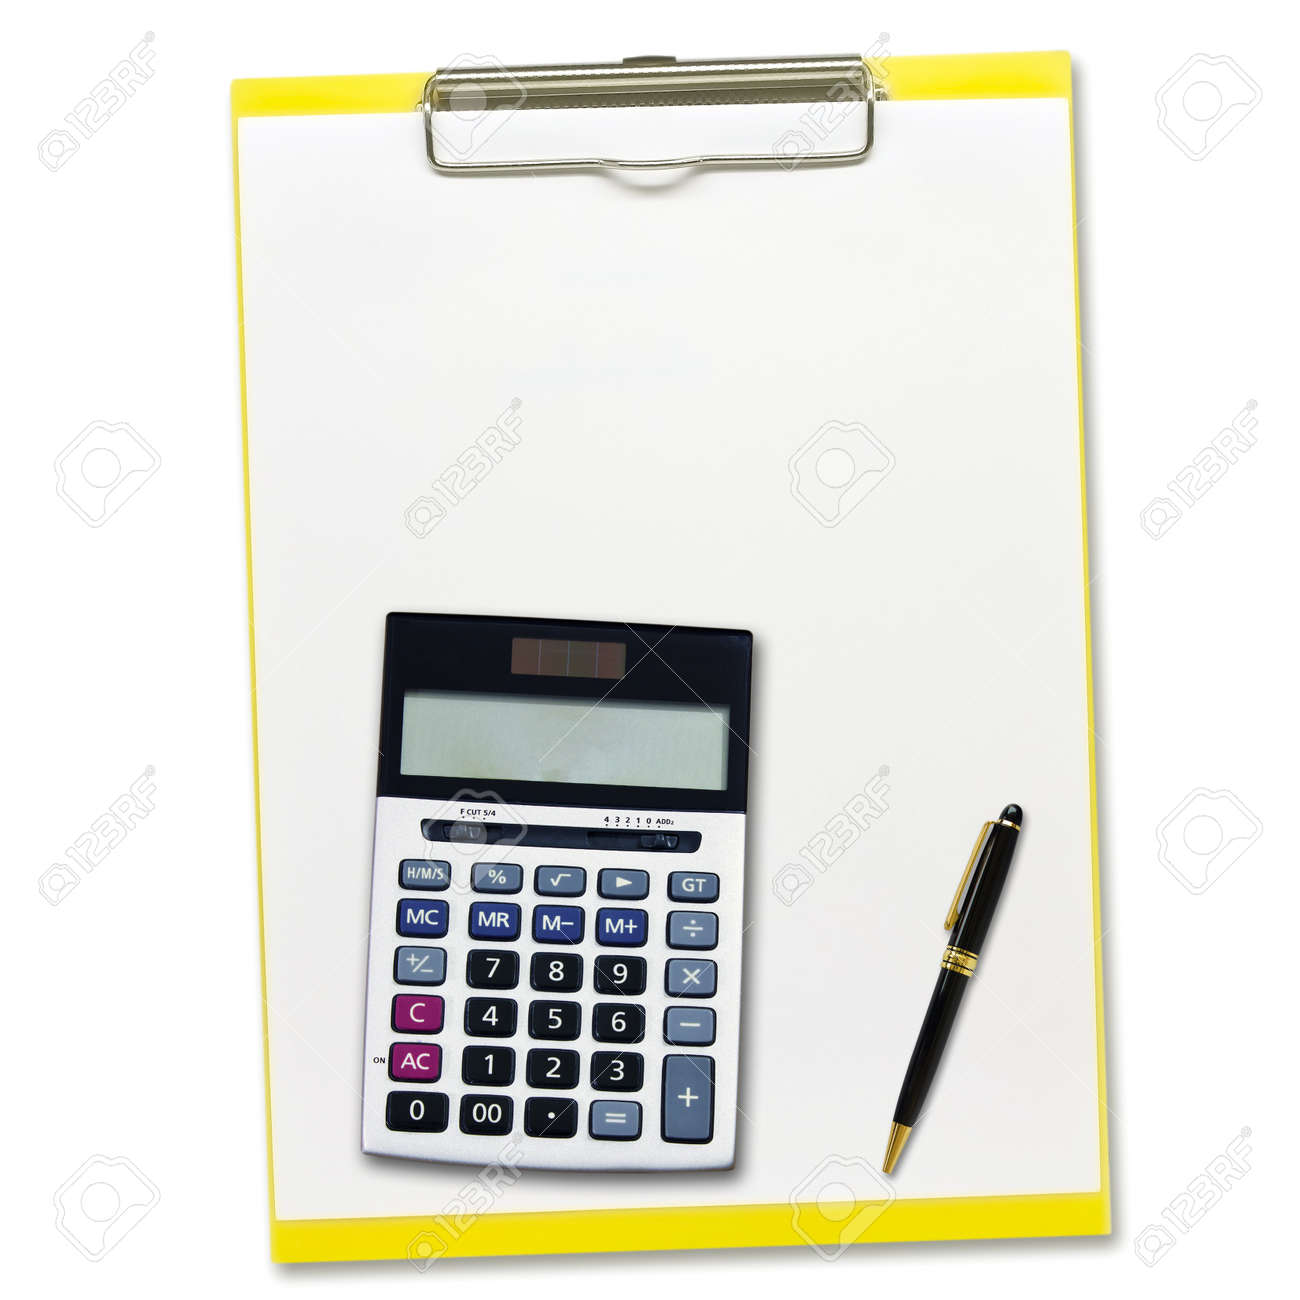 calculator and Pen on notepad  isolated on white background Stock Photo - 21801625